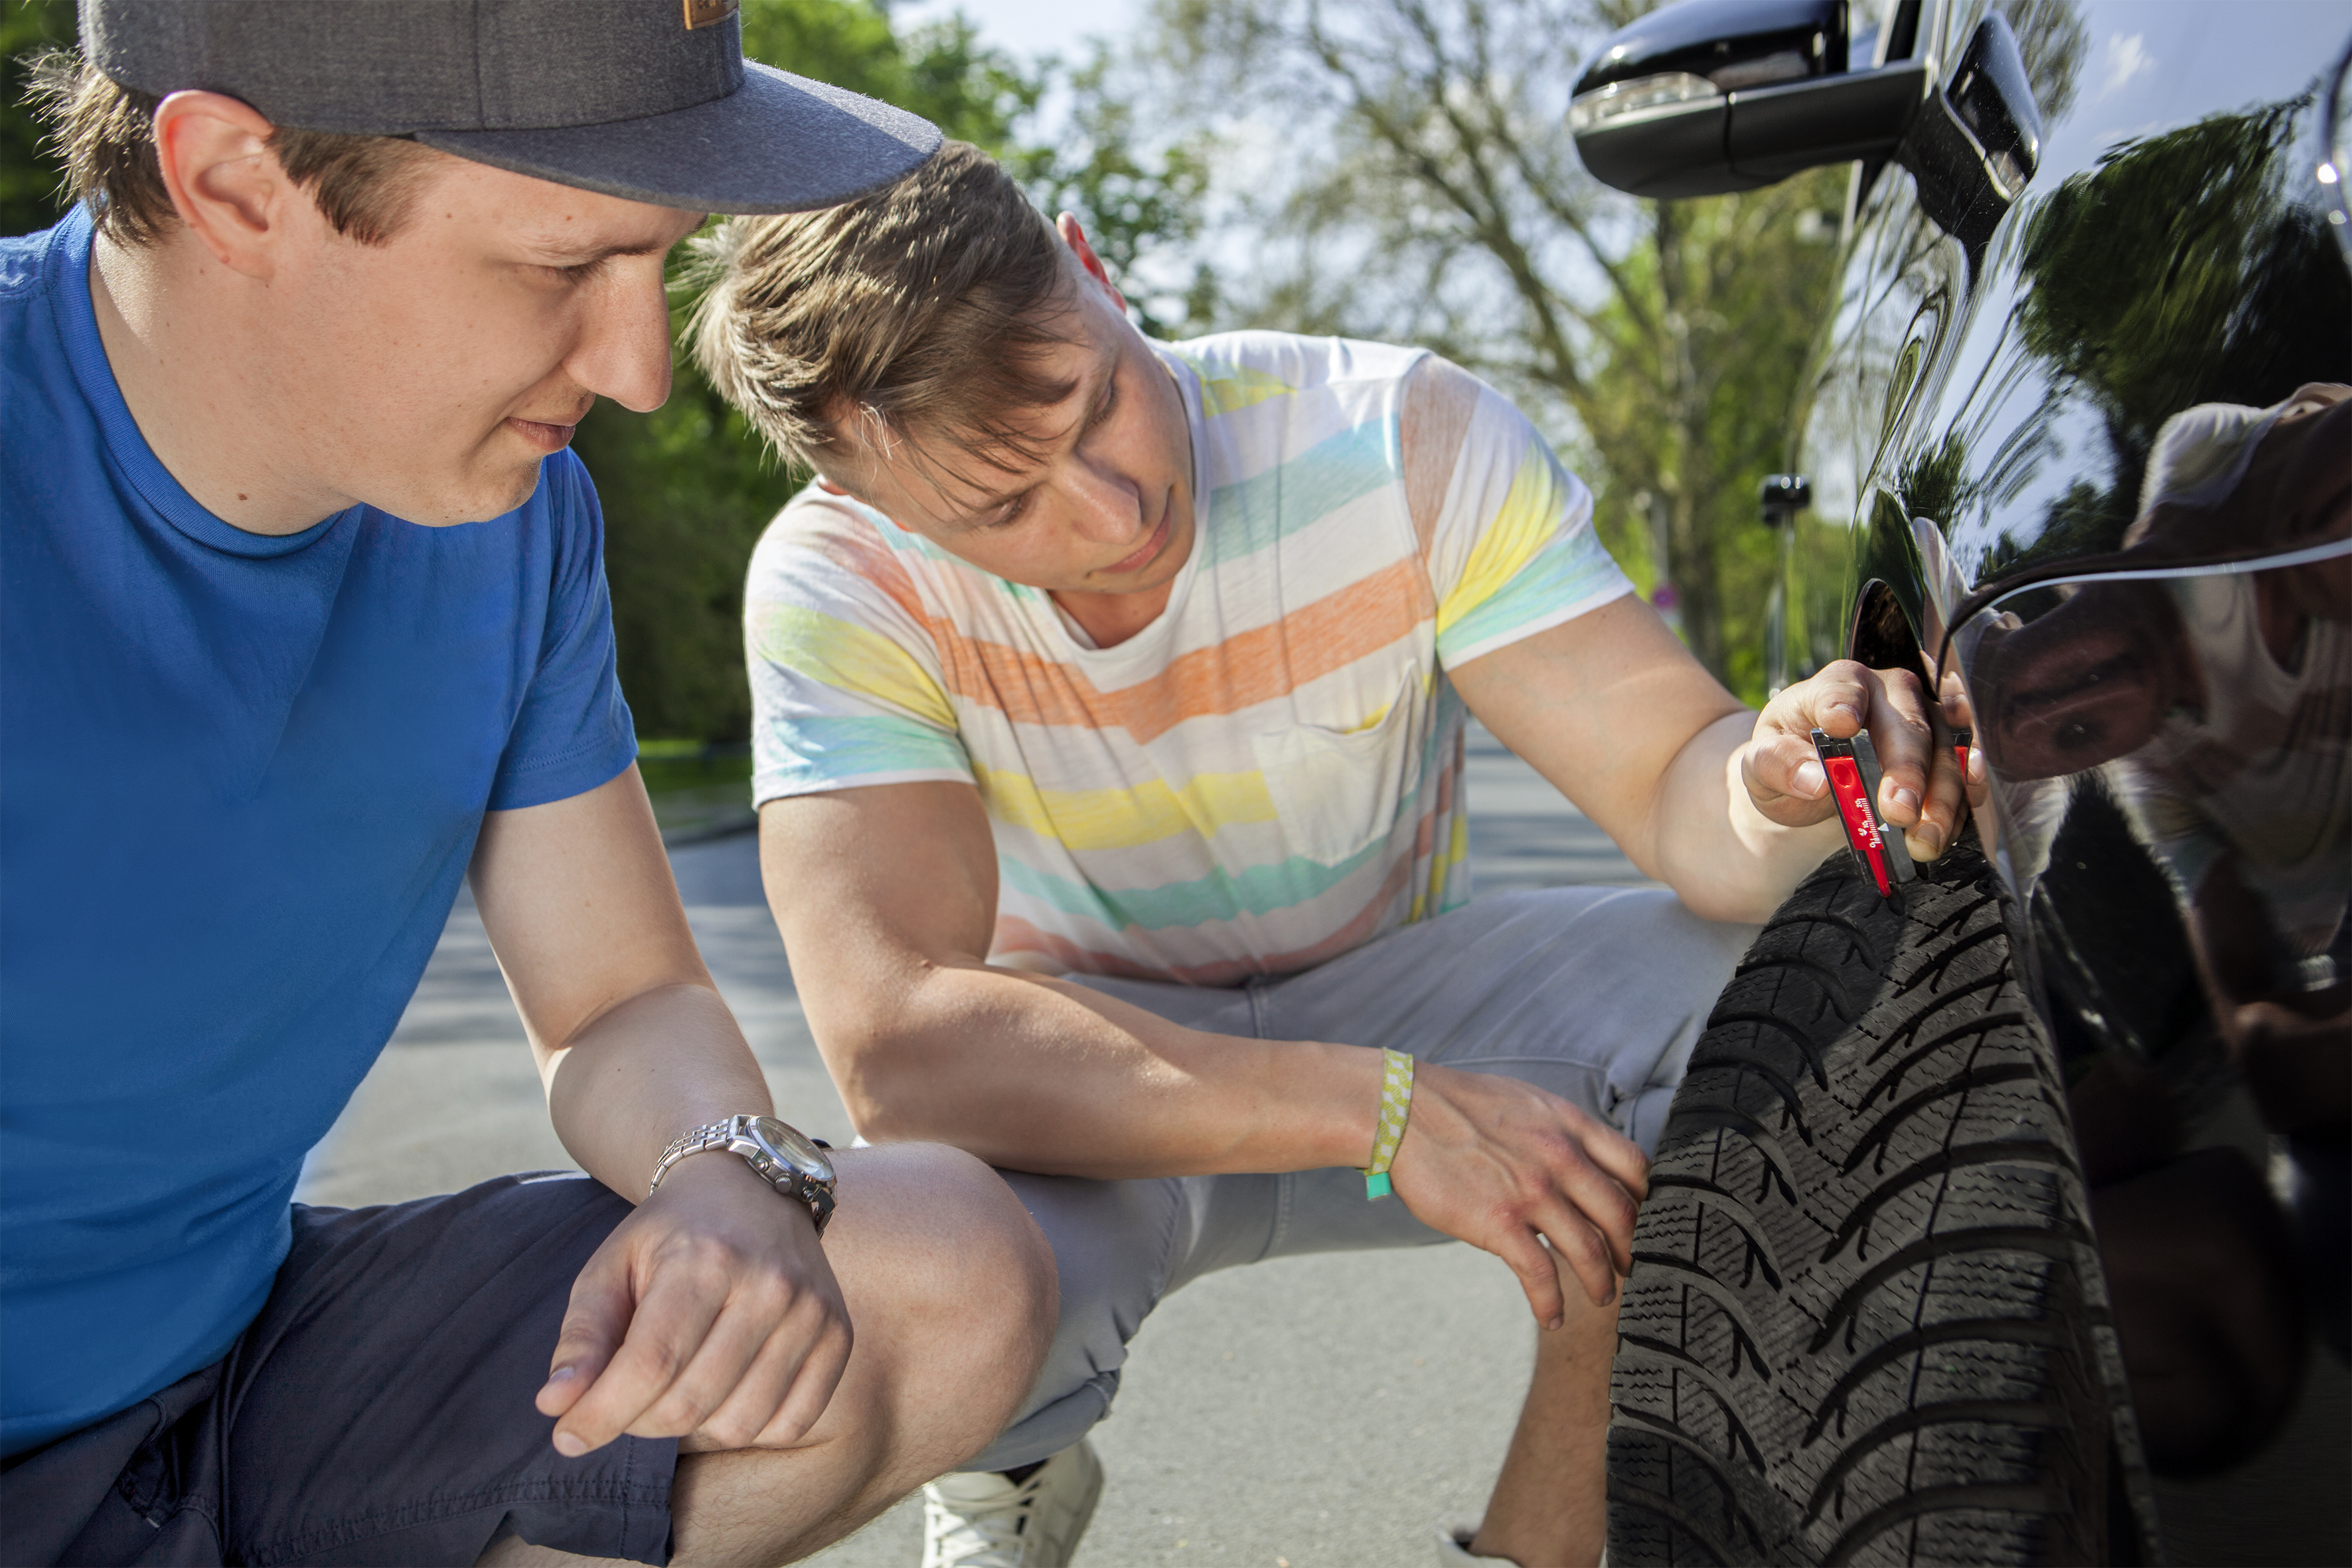 Due to their specific characteristics, summer tyres are the safest and most cost-conscious choice for the warmest season of the year (Photo: Business Wire)